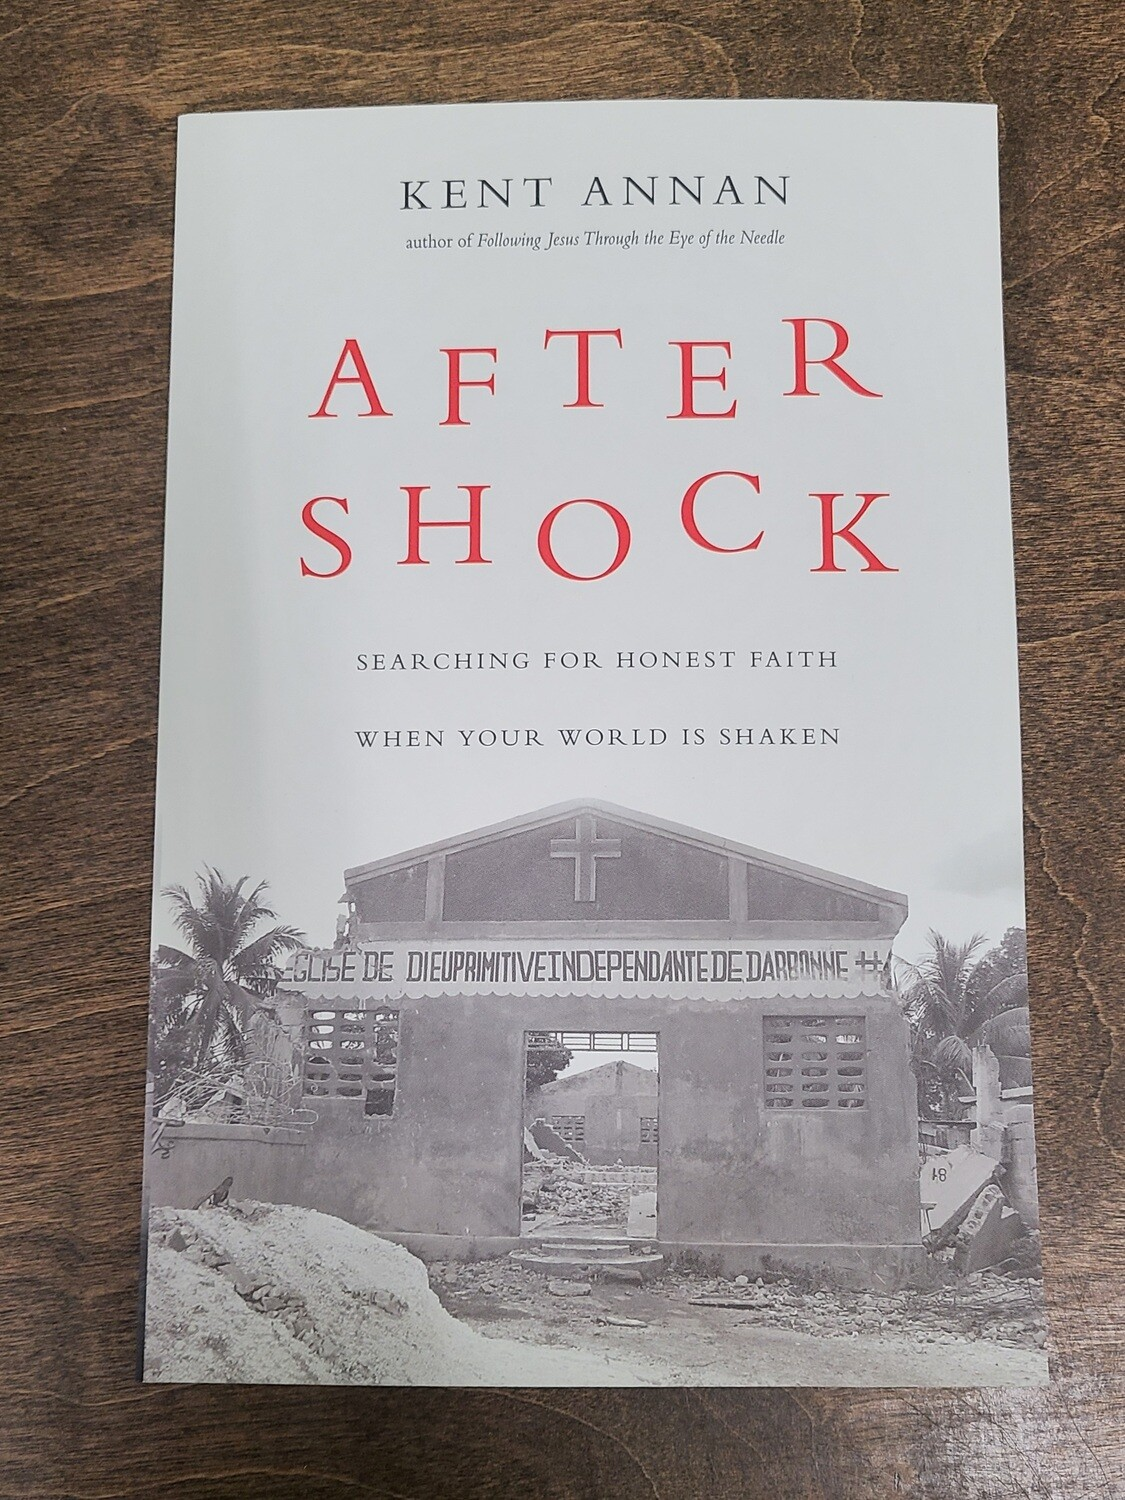 After Shock: Searching for Honest Faith when Your World is Shaken by Kent Annan